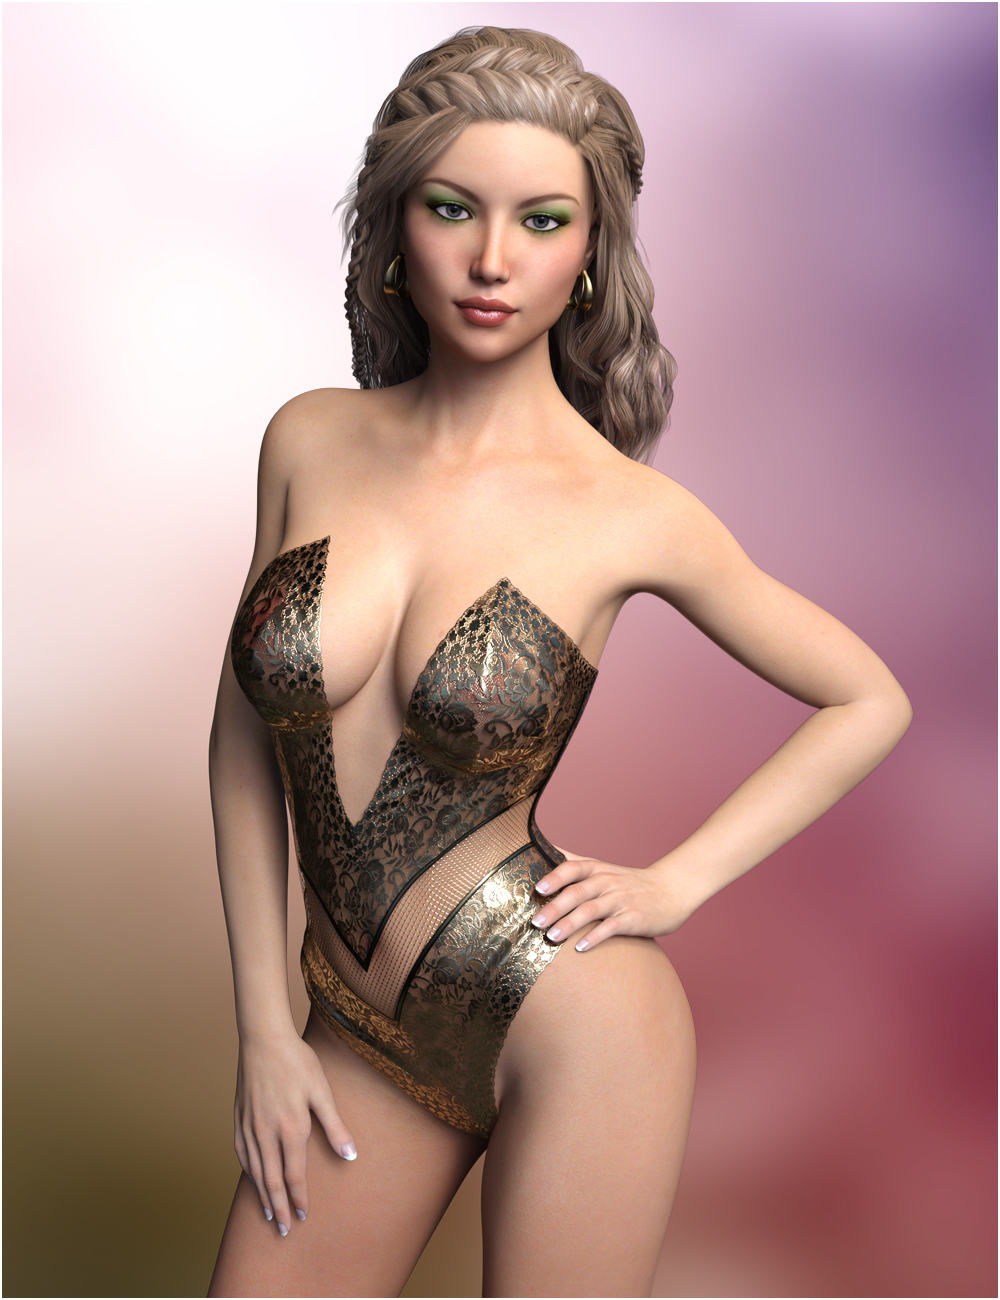 Emerson For Genesis 3 Female(s) 3D Figure Assets ...